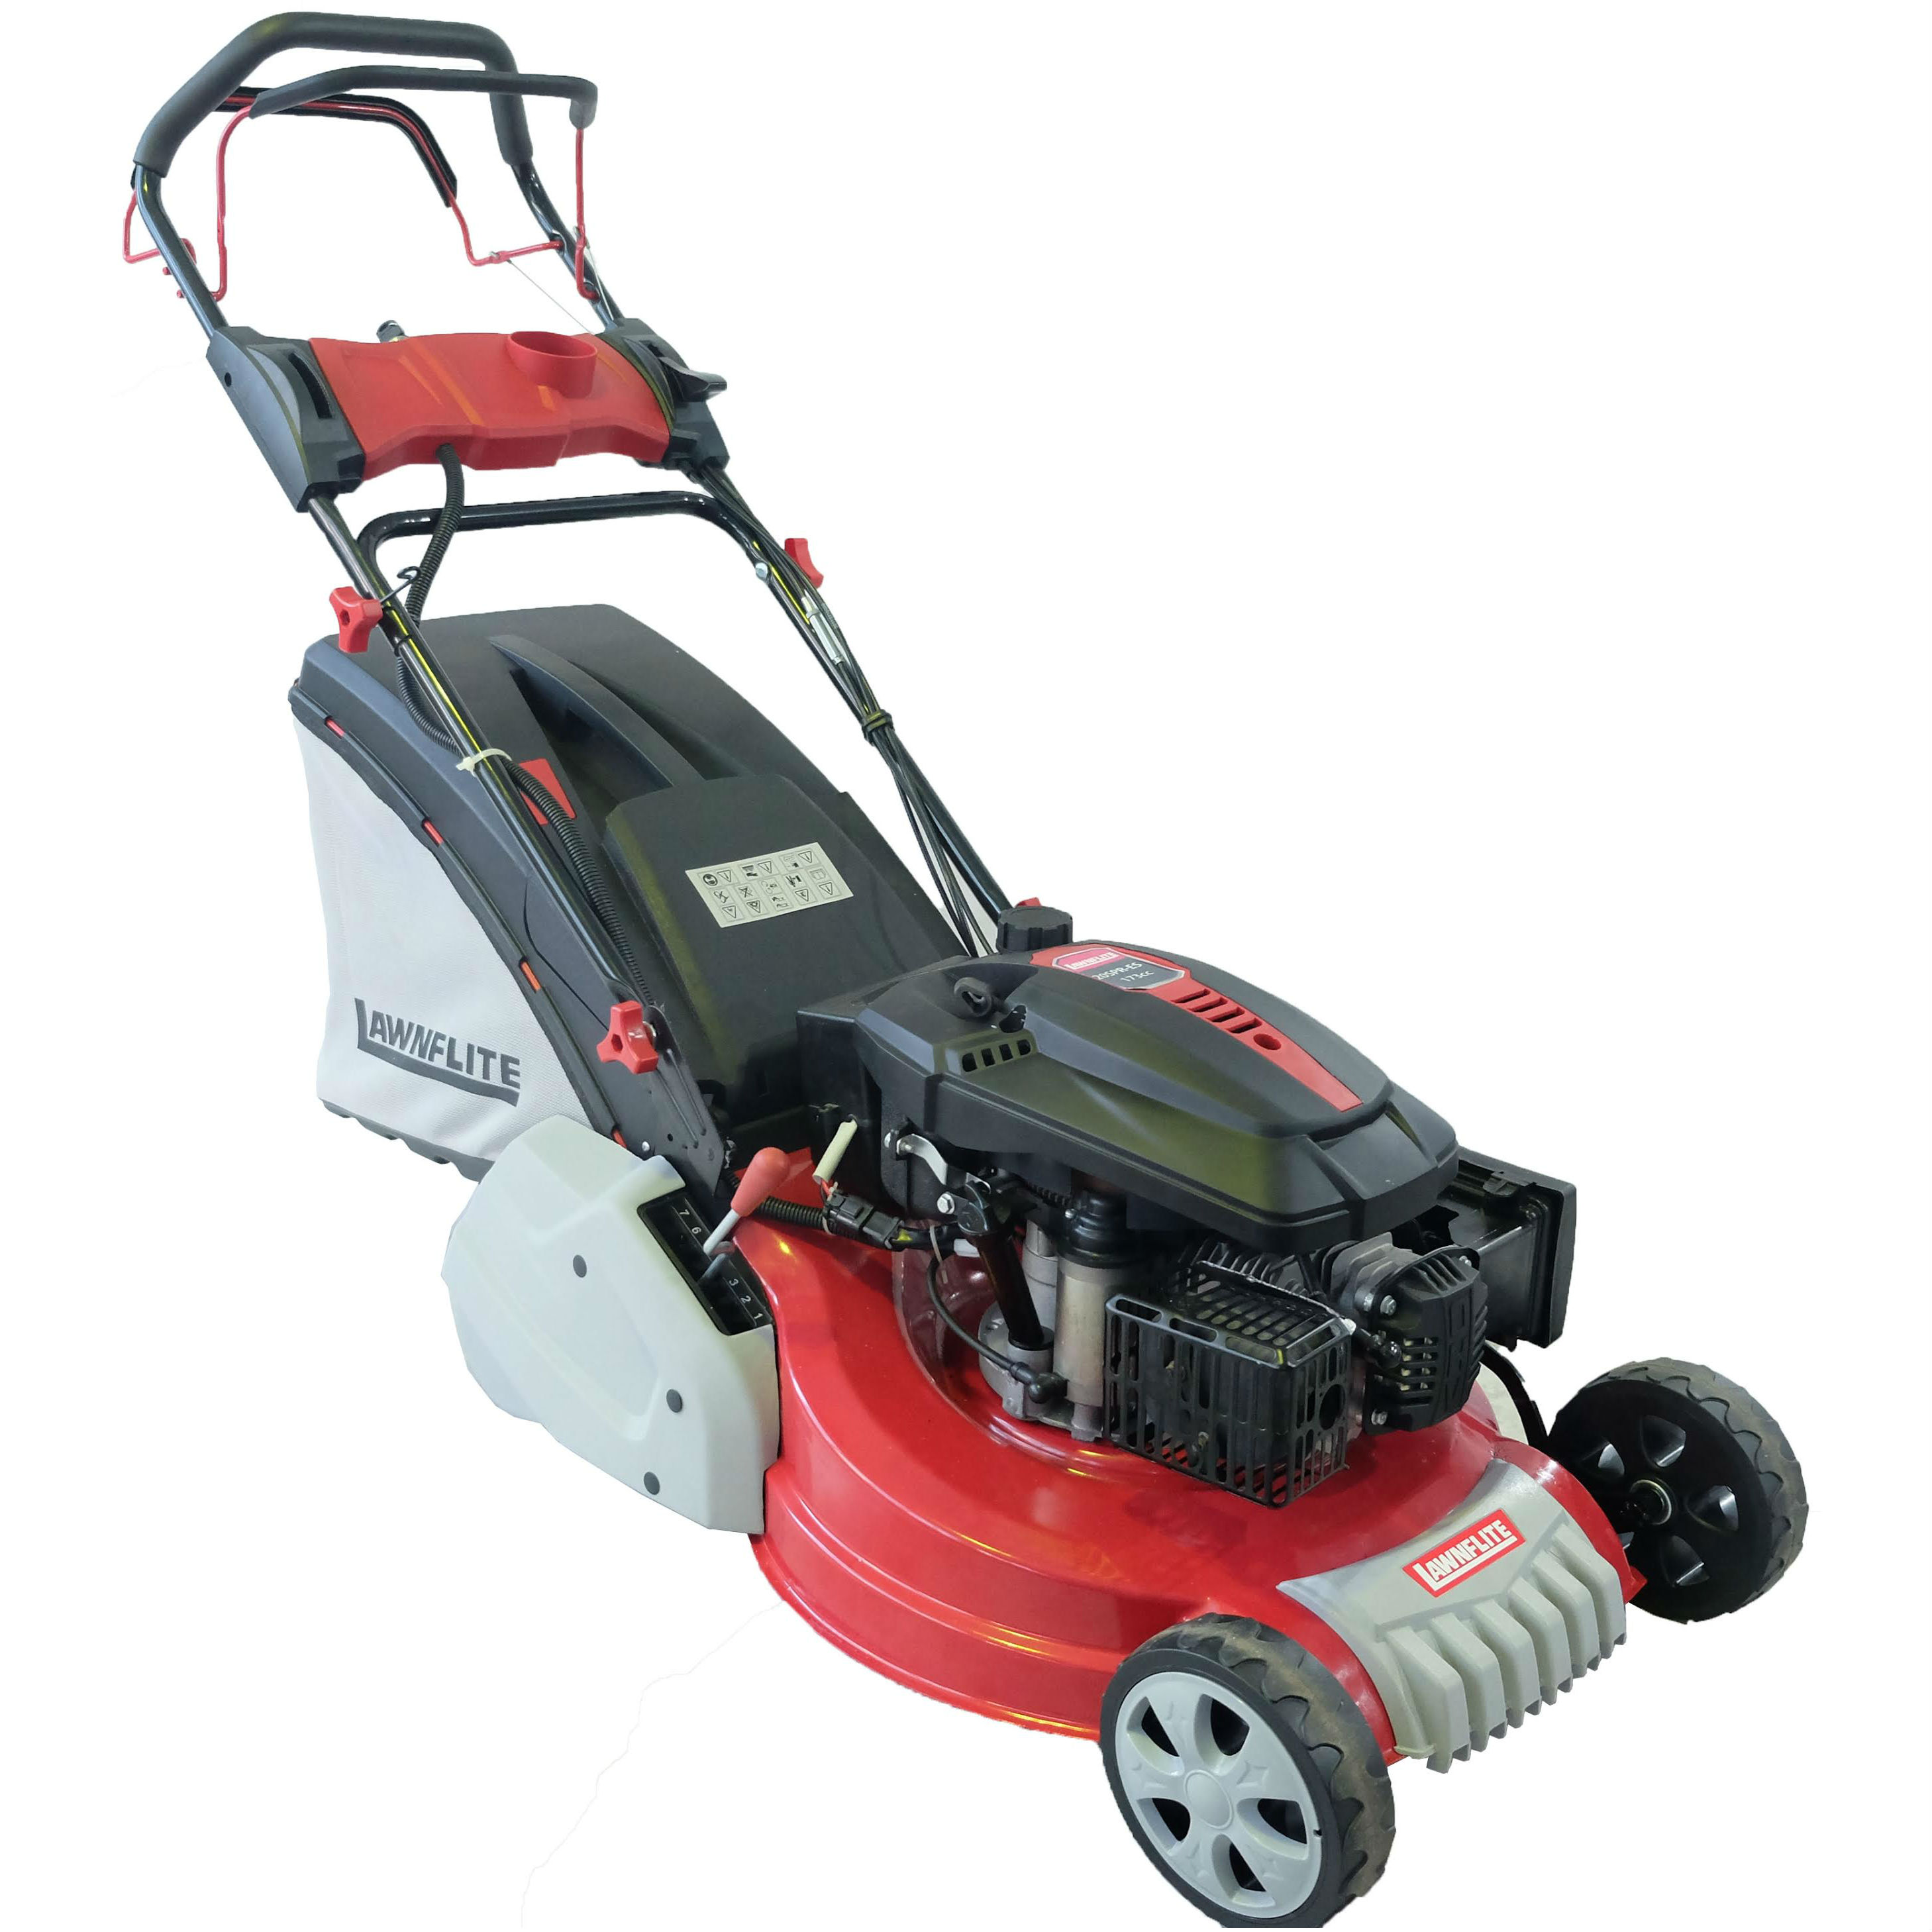 Lawnflite 20SPR-ES Self-Propelled Petrol Rear-Roller Lawnmower with Electric Start